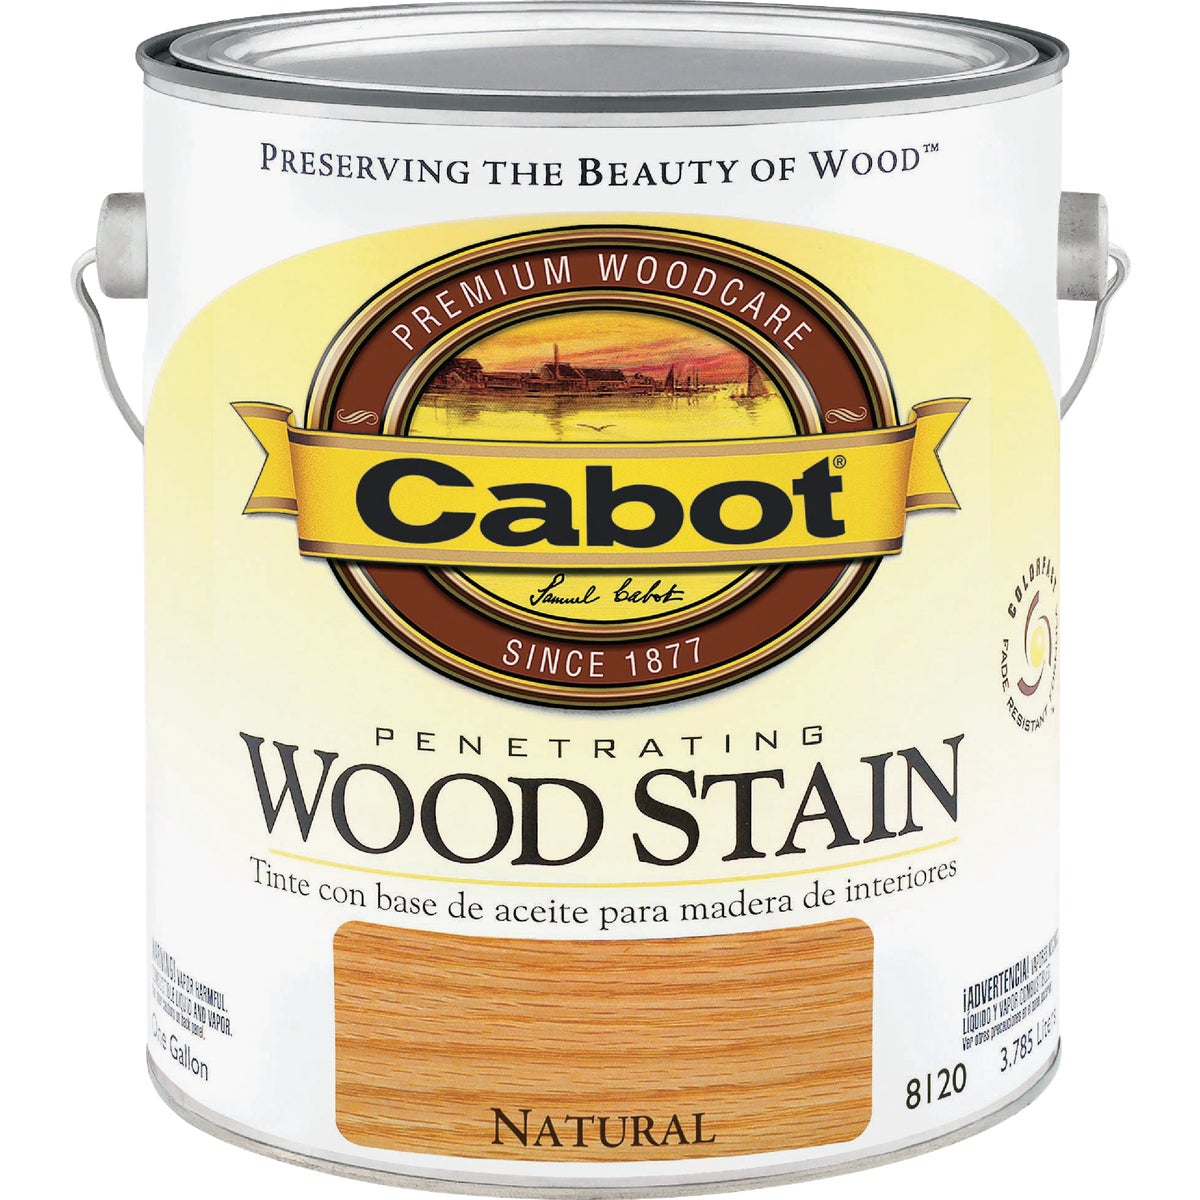 INT NATURAL WOOD STAIN - 144.0008120.007 by Valspar Corp